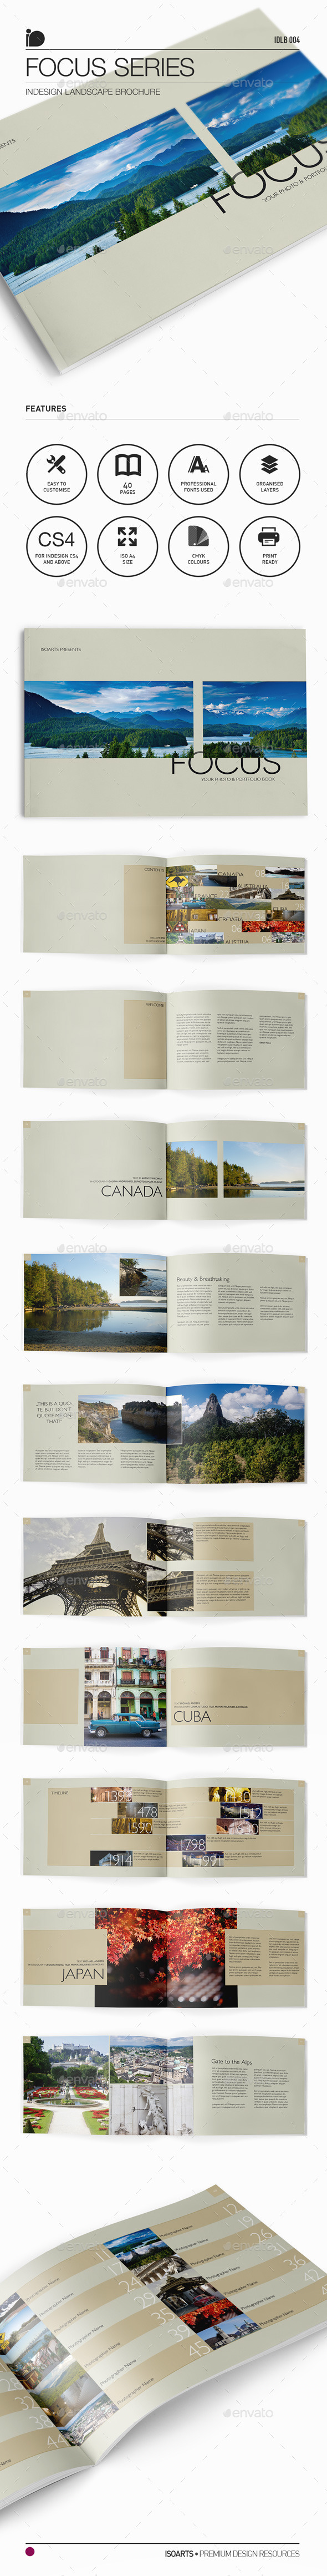 Landscape Brochure • Focus Series - Photo Albums Print Templates